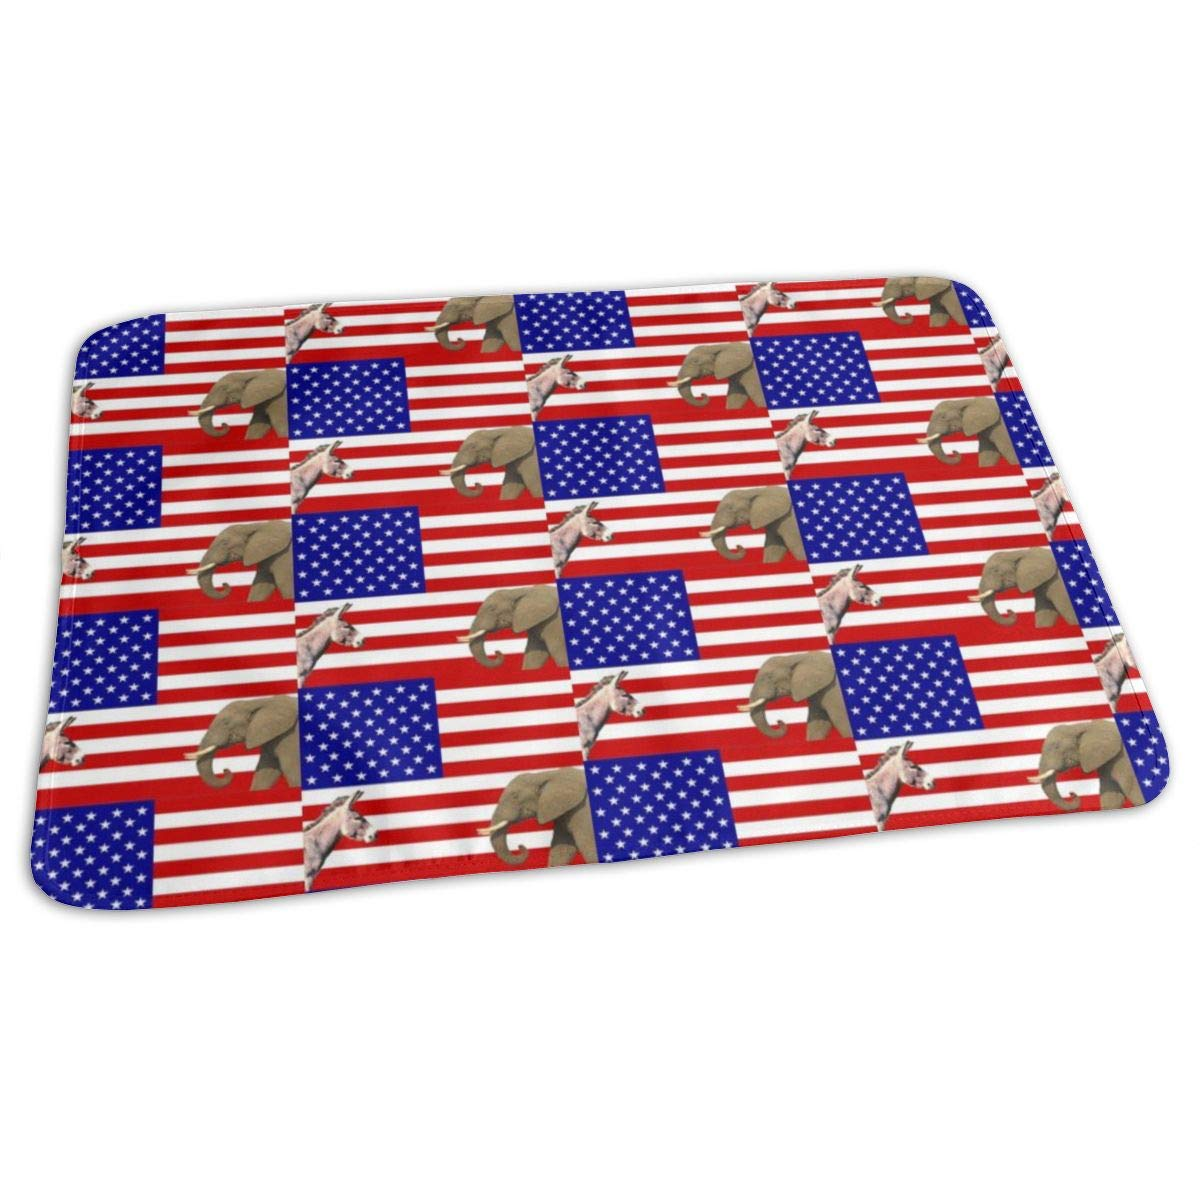 It's Not About The Party, It's About The Country Baby Portable Reusable Changing Pad Mat 19.7x27.5 inch